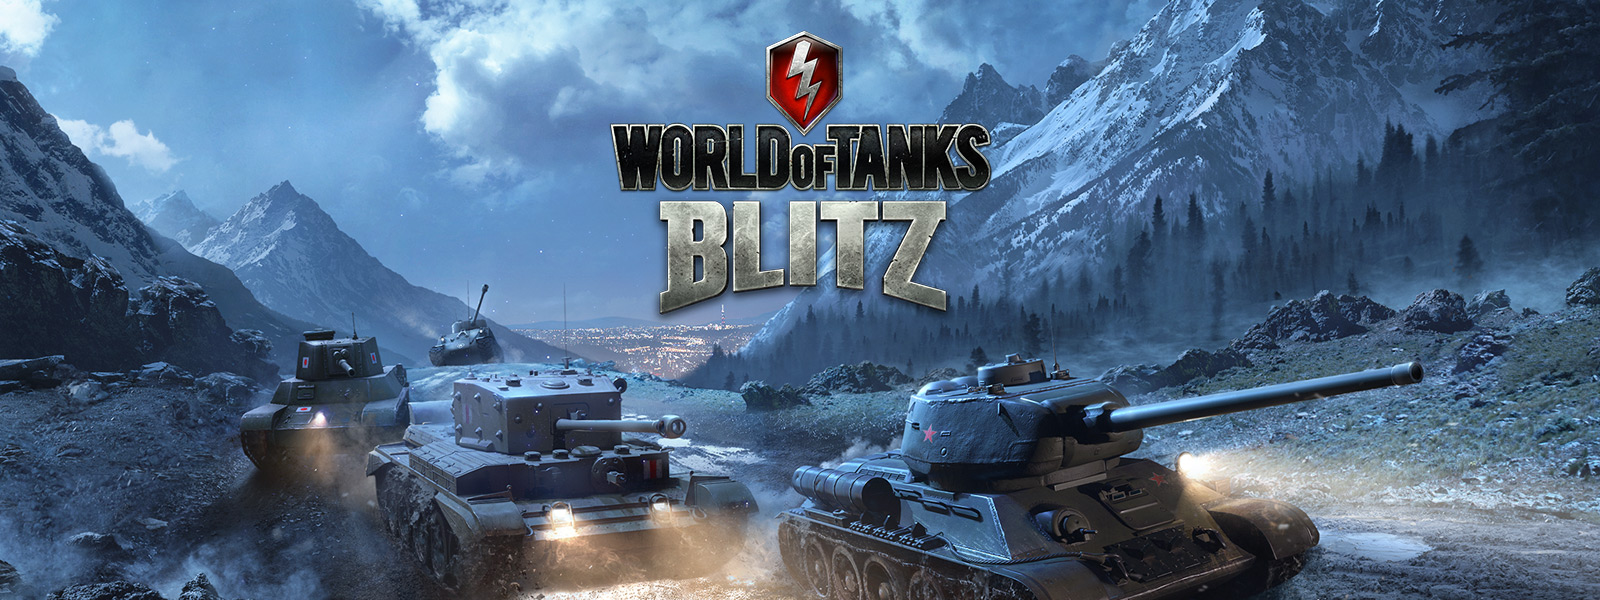 world of tanks res_mods configs xvm j1mb091